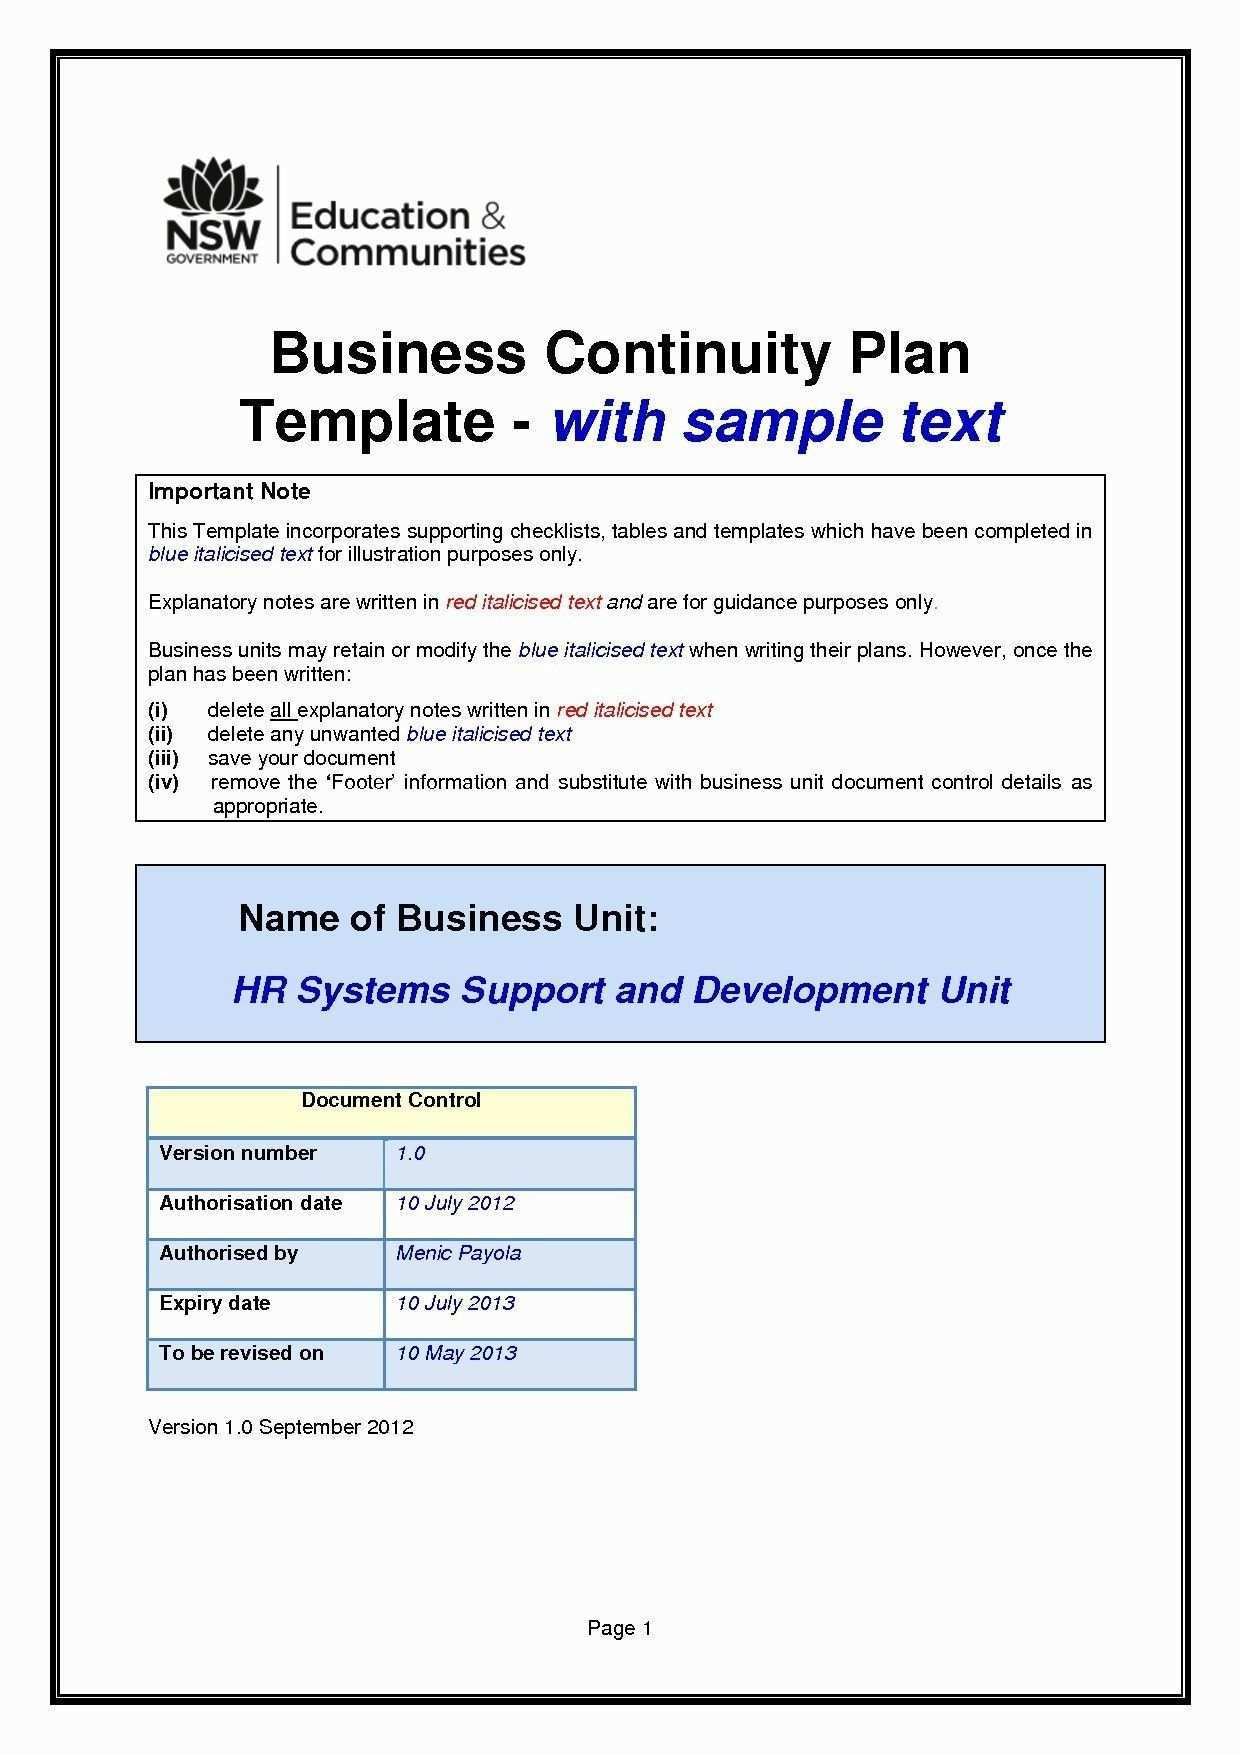 Download New School Business Continuity Plan Template Can Save At New School Busines Business Continuity Planning Business Continuity Business Contingency Plan